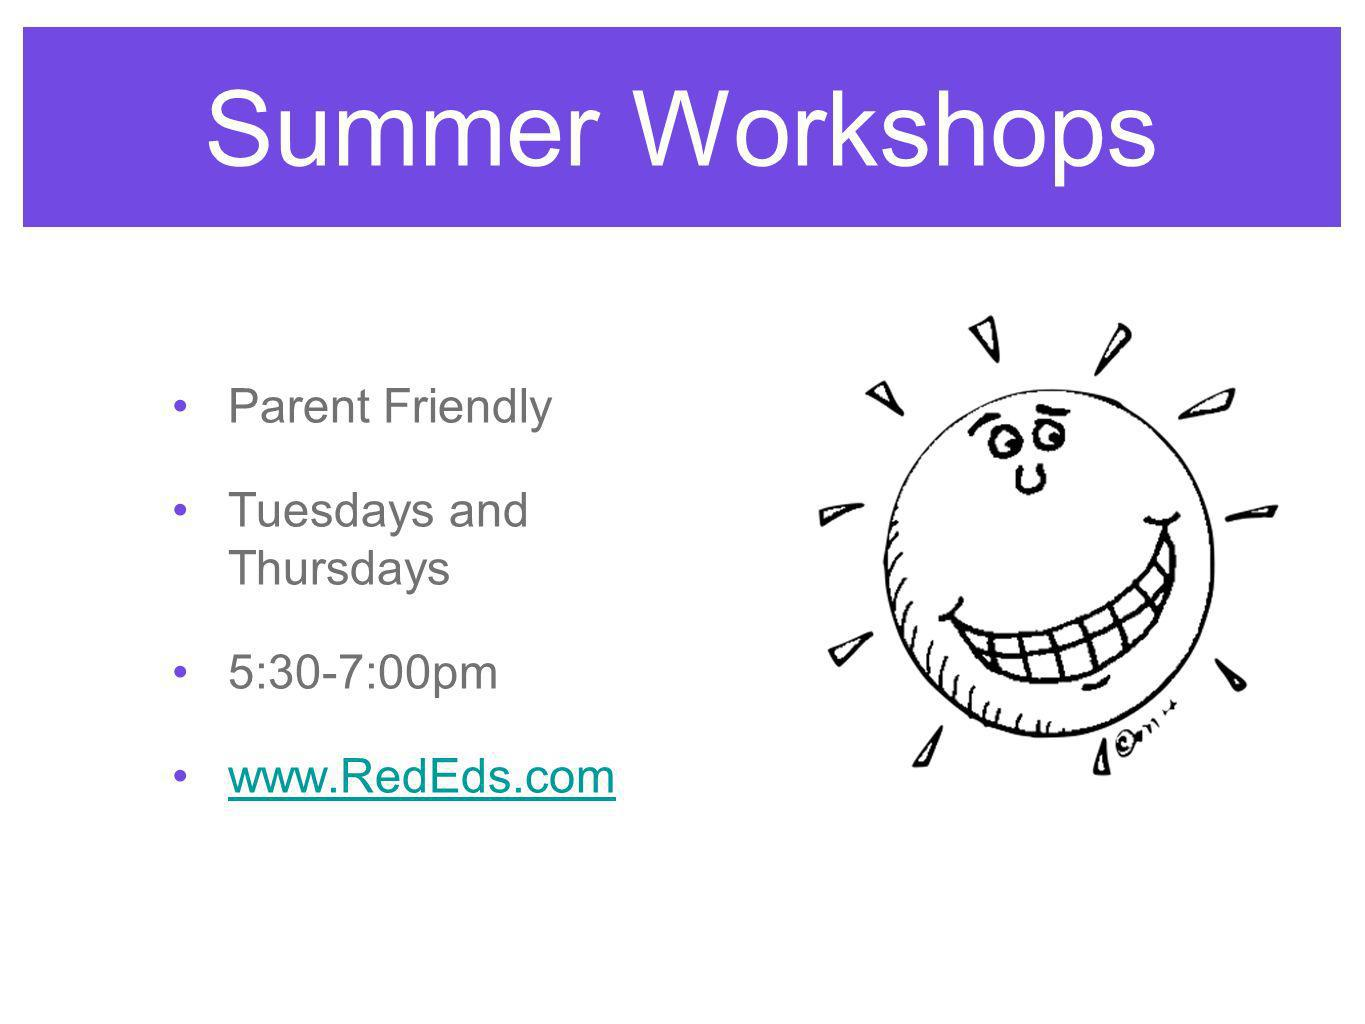 Summer Workshops Parent Friendly Tuesdays and Thursdays 5:30-7:00pm www.RedEds.com